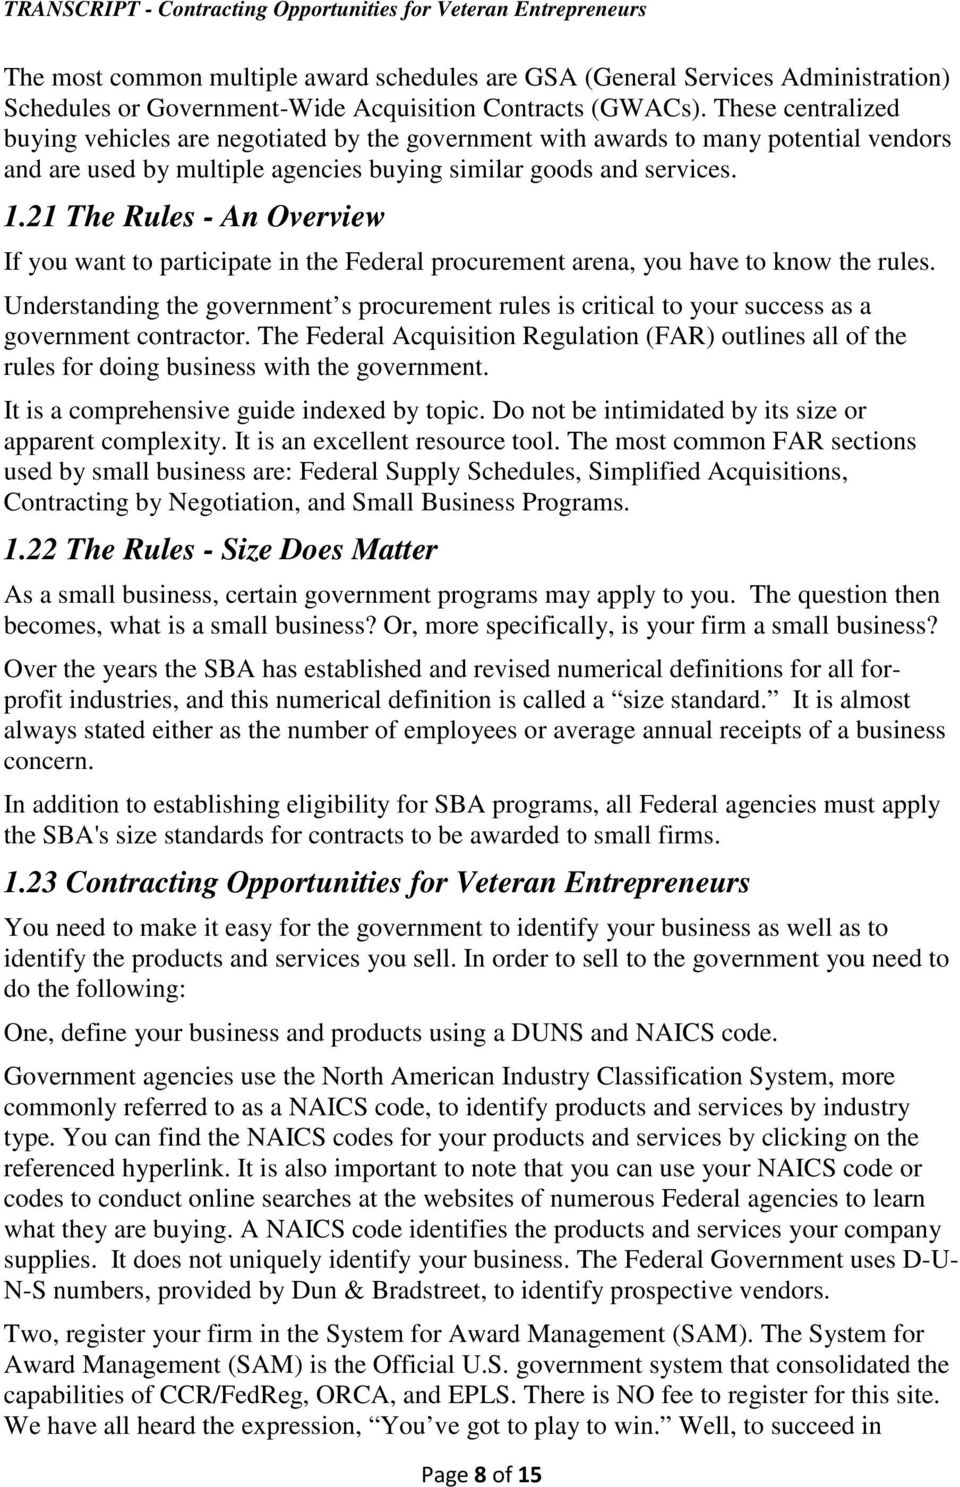 21 The Rules - An Overview If you want to participate in the Federal procurement arena, you have to know the rules.